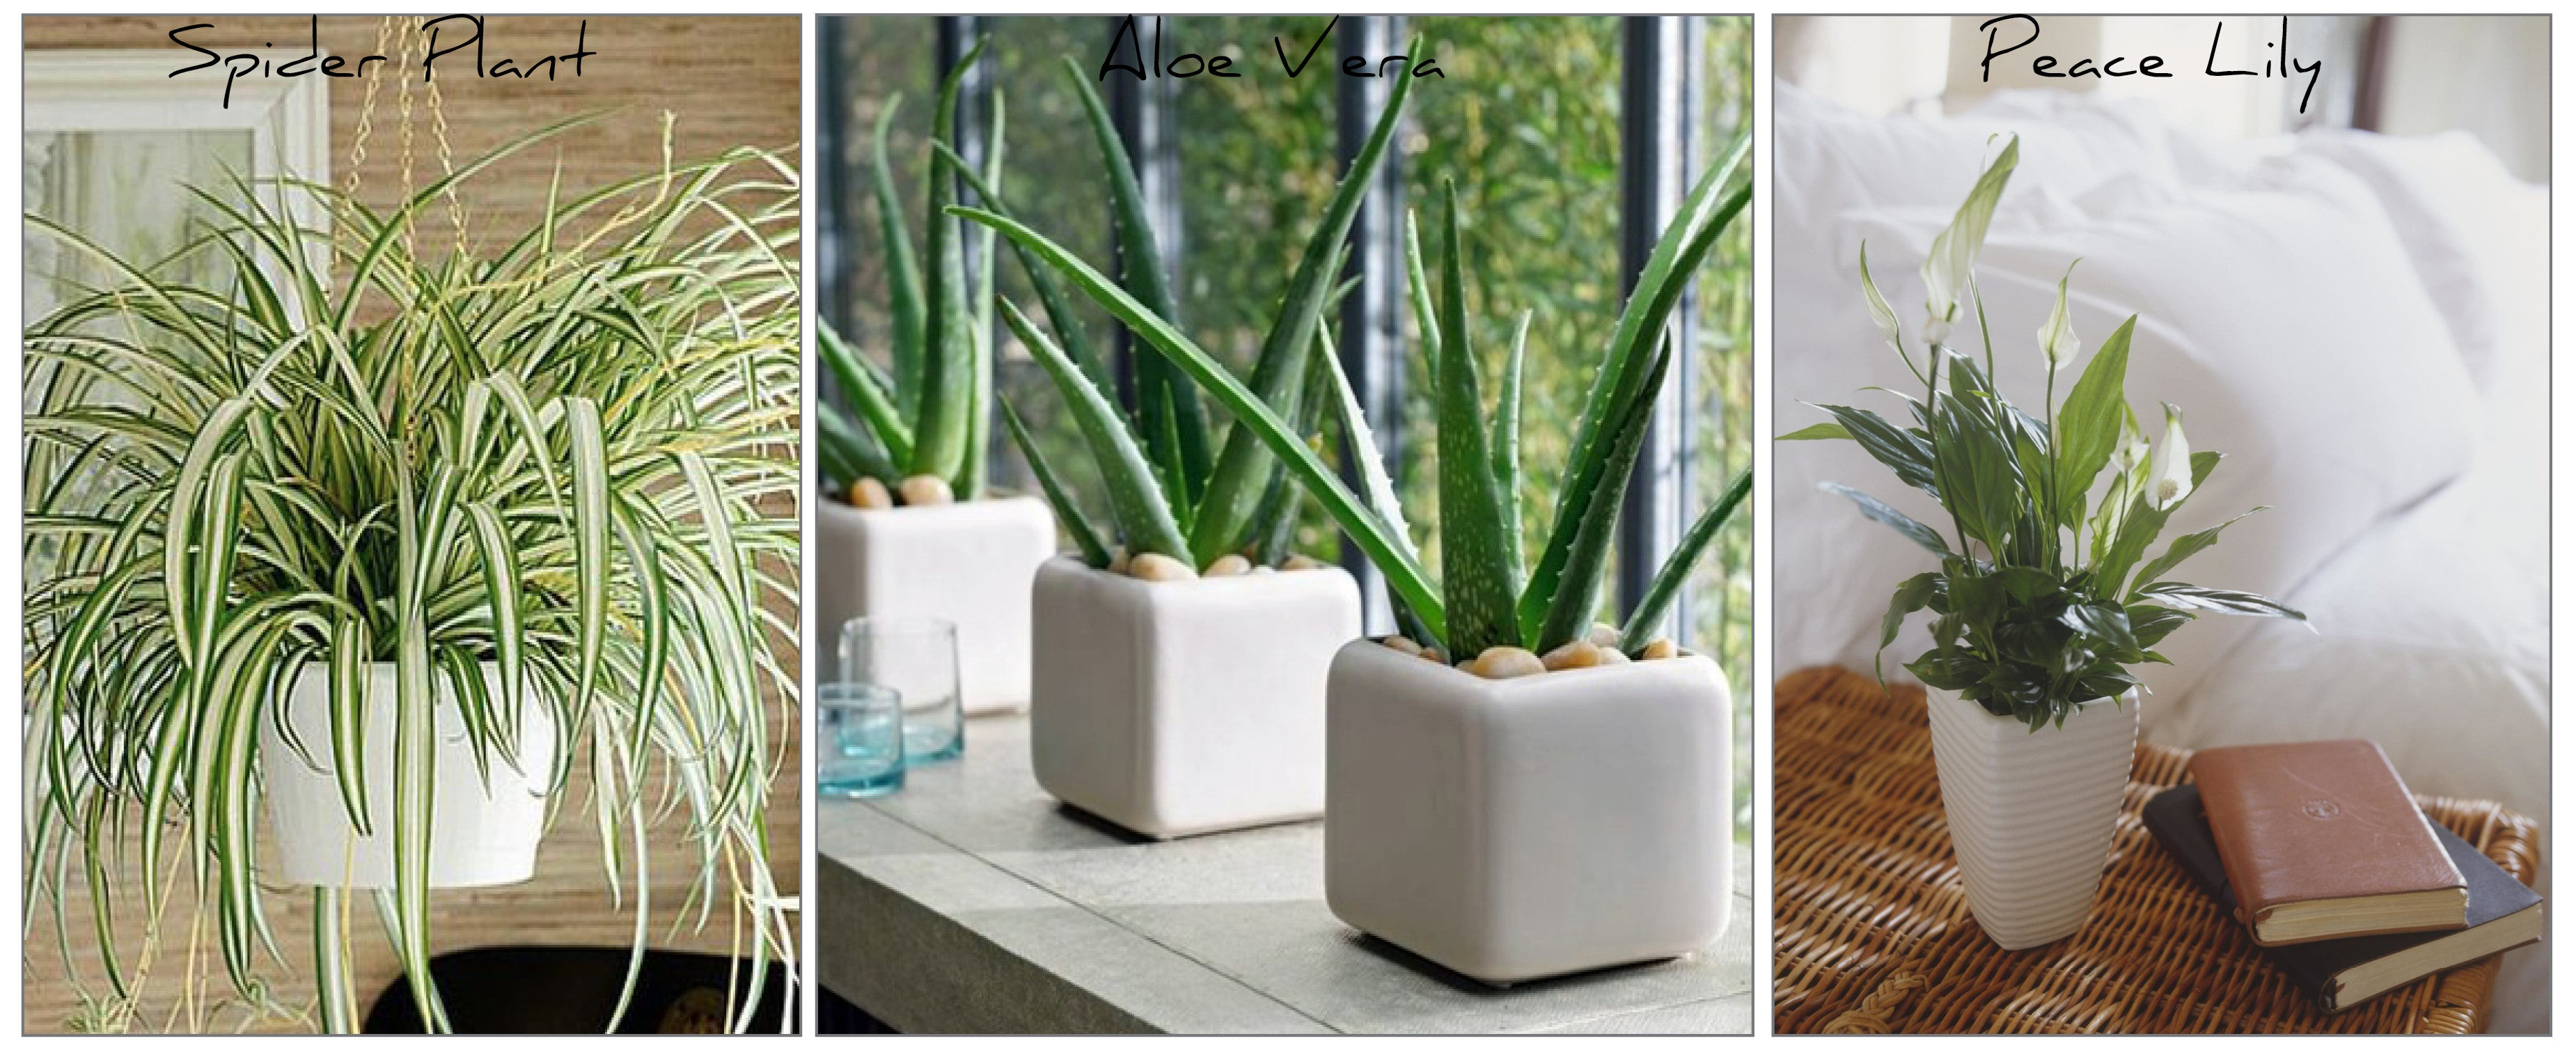 Create an Indoor Garden: Start with easy maintenance plants to get you used to keeping them alive! Here are our top 3 ...   1. Spider Plant ~ Easy to grow, prefers indirect sunlight and is great as a hanging plant. Needs water a couple of times a weeks and if the tips start to go brown you know the soil is too dry.   2. Aloe Vera ~ The Aloe is in greater danger if being over-watered than underwater! So water once every couple of weeks, a bit more in Summer. Likes light but not harsh sunshine.  3. Peace Lily - This beautiful plant lets you know when it's thirsty as the leaves begins to droop. Keep in a warm room and water little and often to keep soil moist and it'll reward you with beautiful white lilies in Sping and again in Autumn. It's also in NASA's top 10 air cleaning plants!